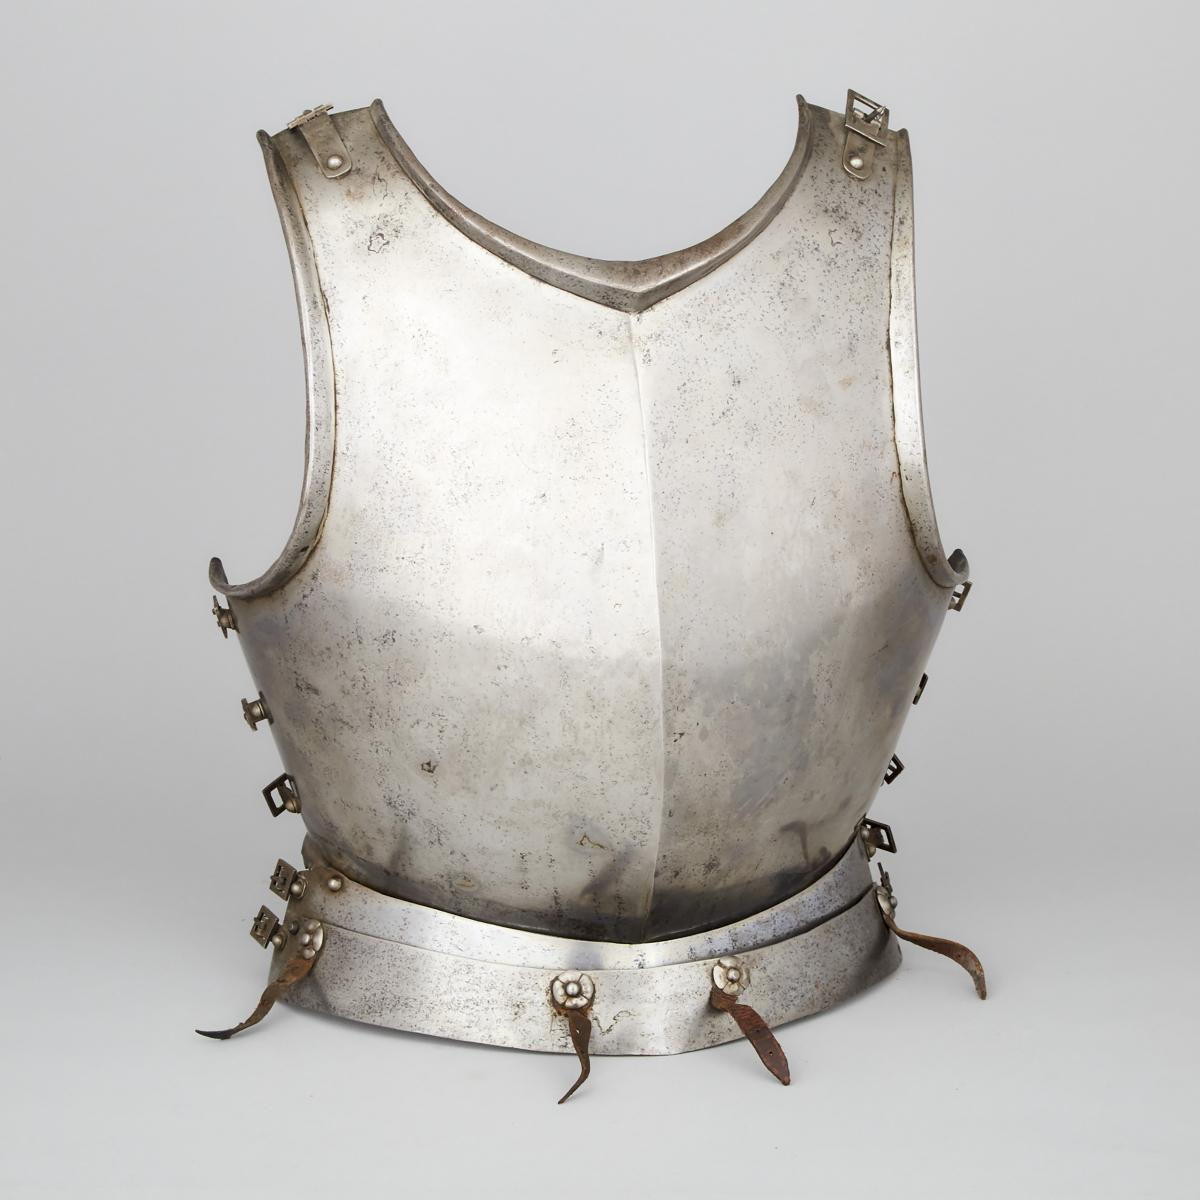 North Italian Infantry Breastplate, early 17th century, height 17.5 in — 44.5 cm